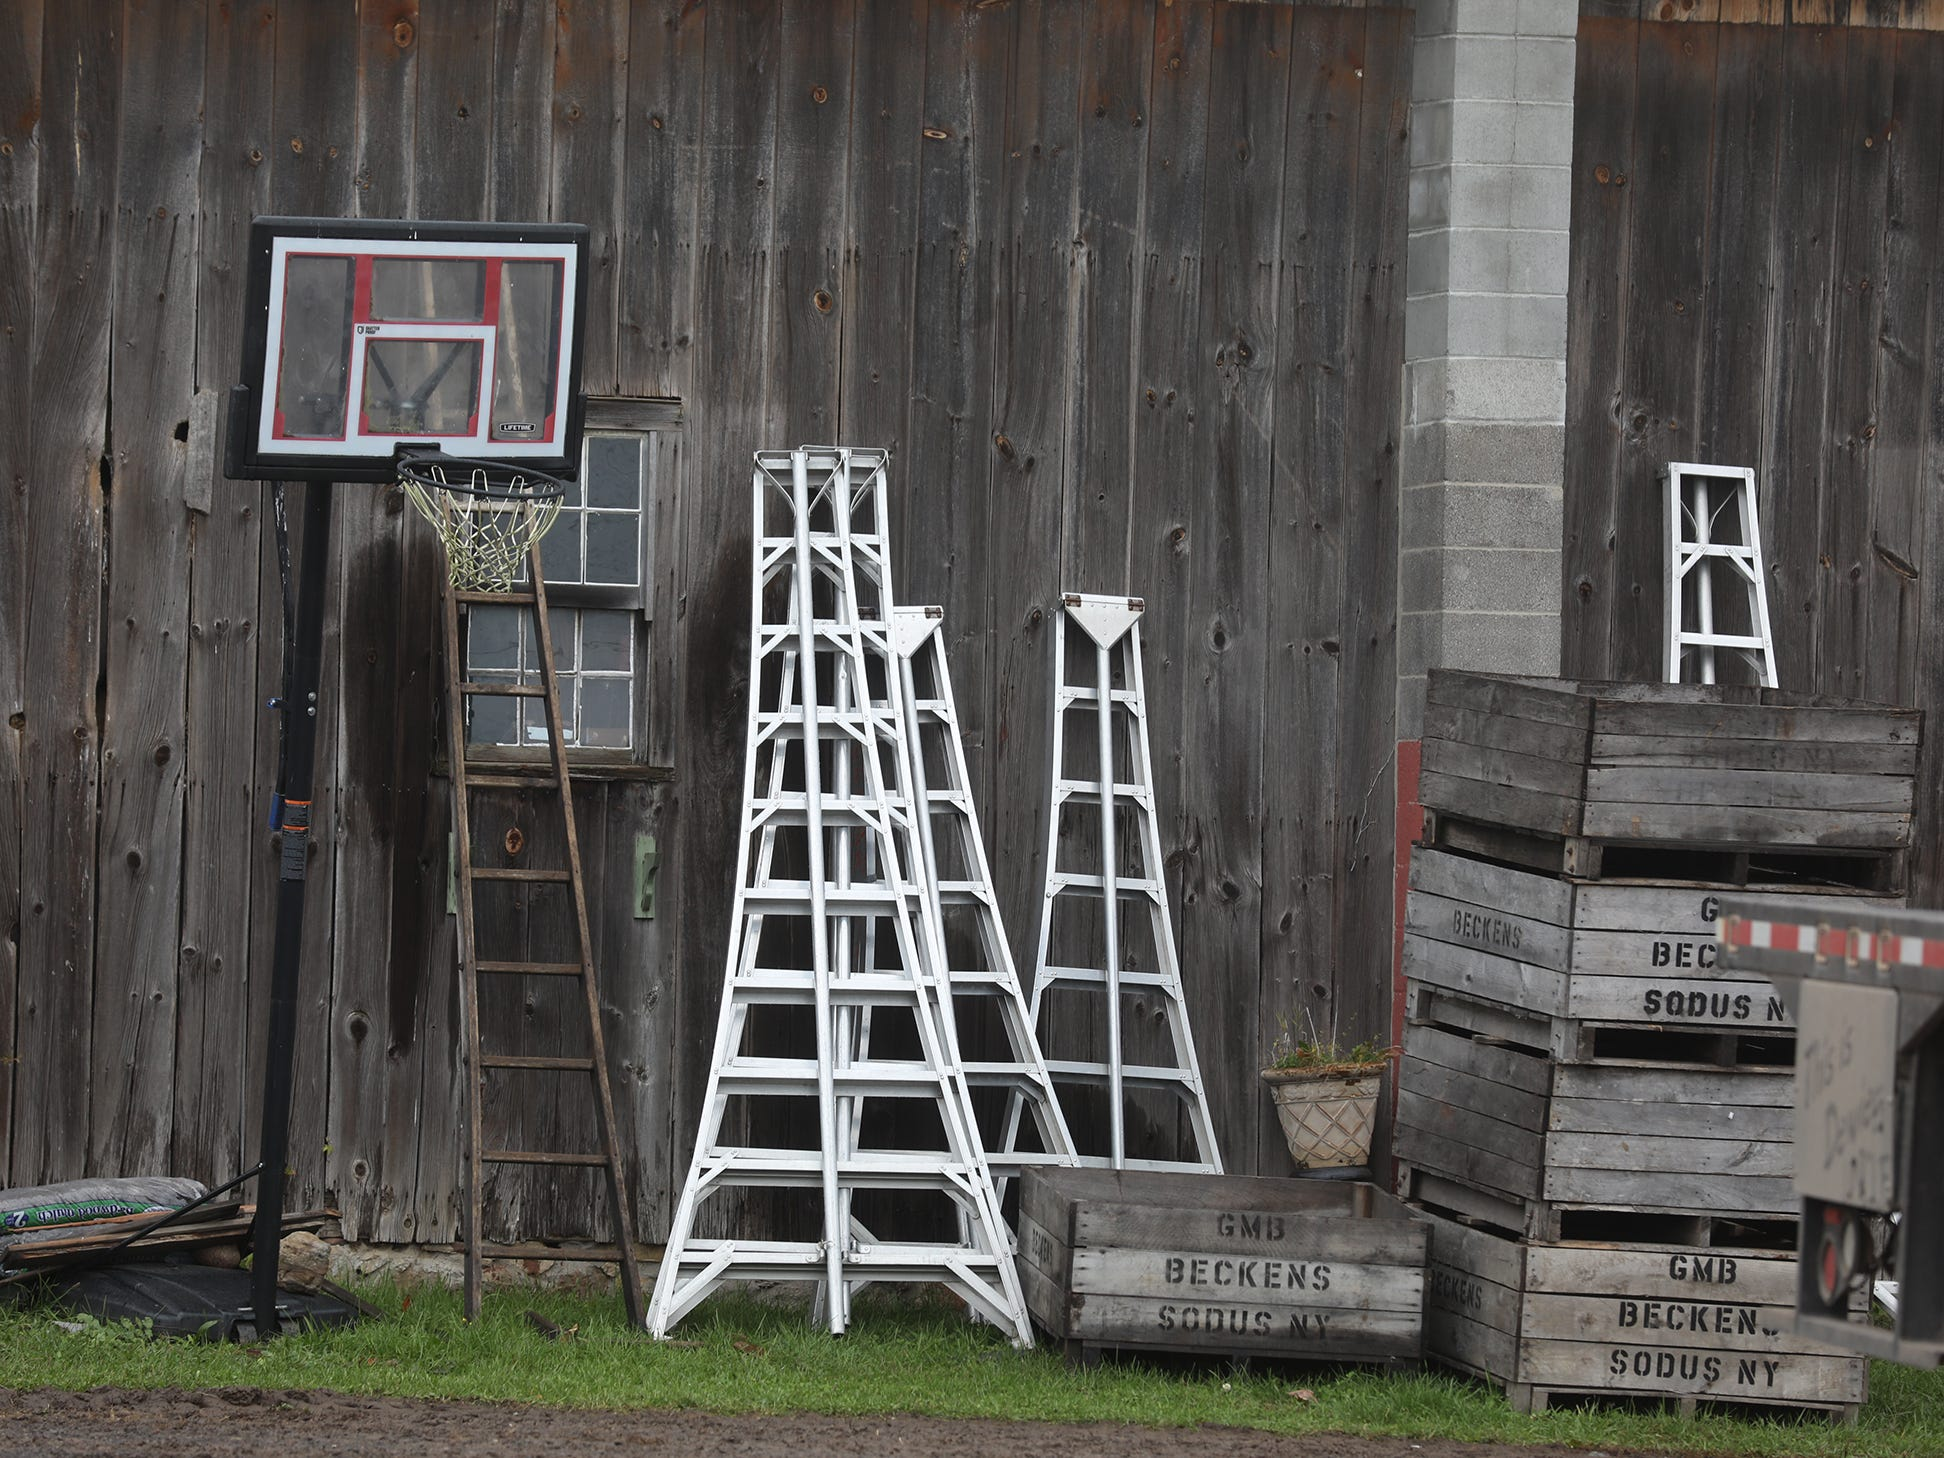 Ladders and crates for picking apples lean against a barn at GMB Beckens Farms LLC.